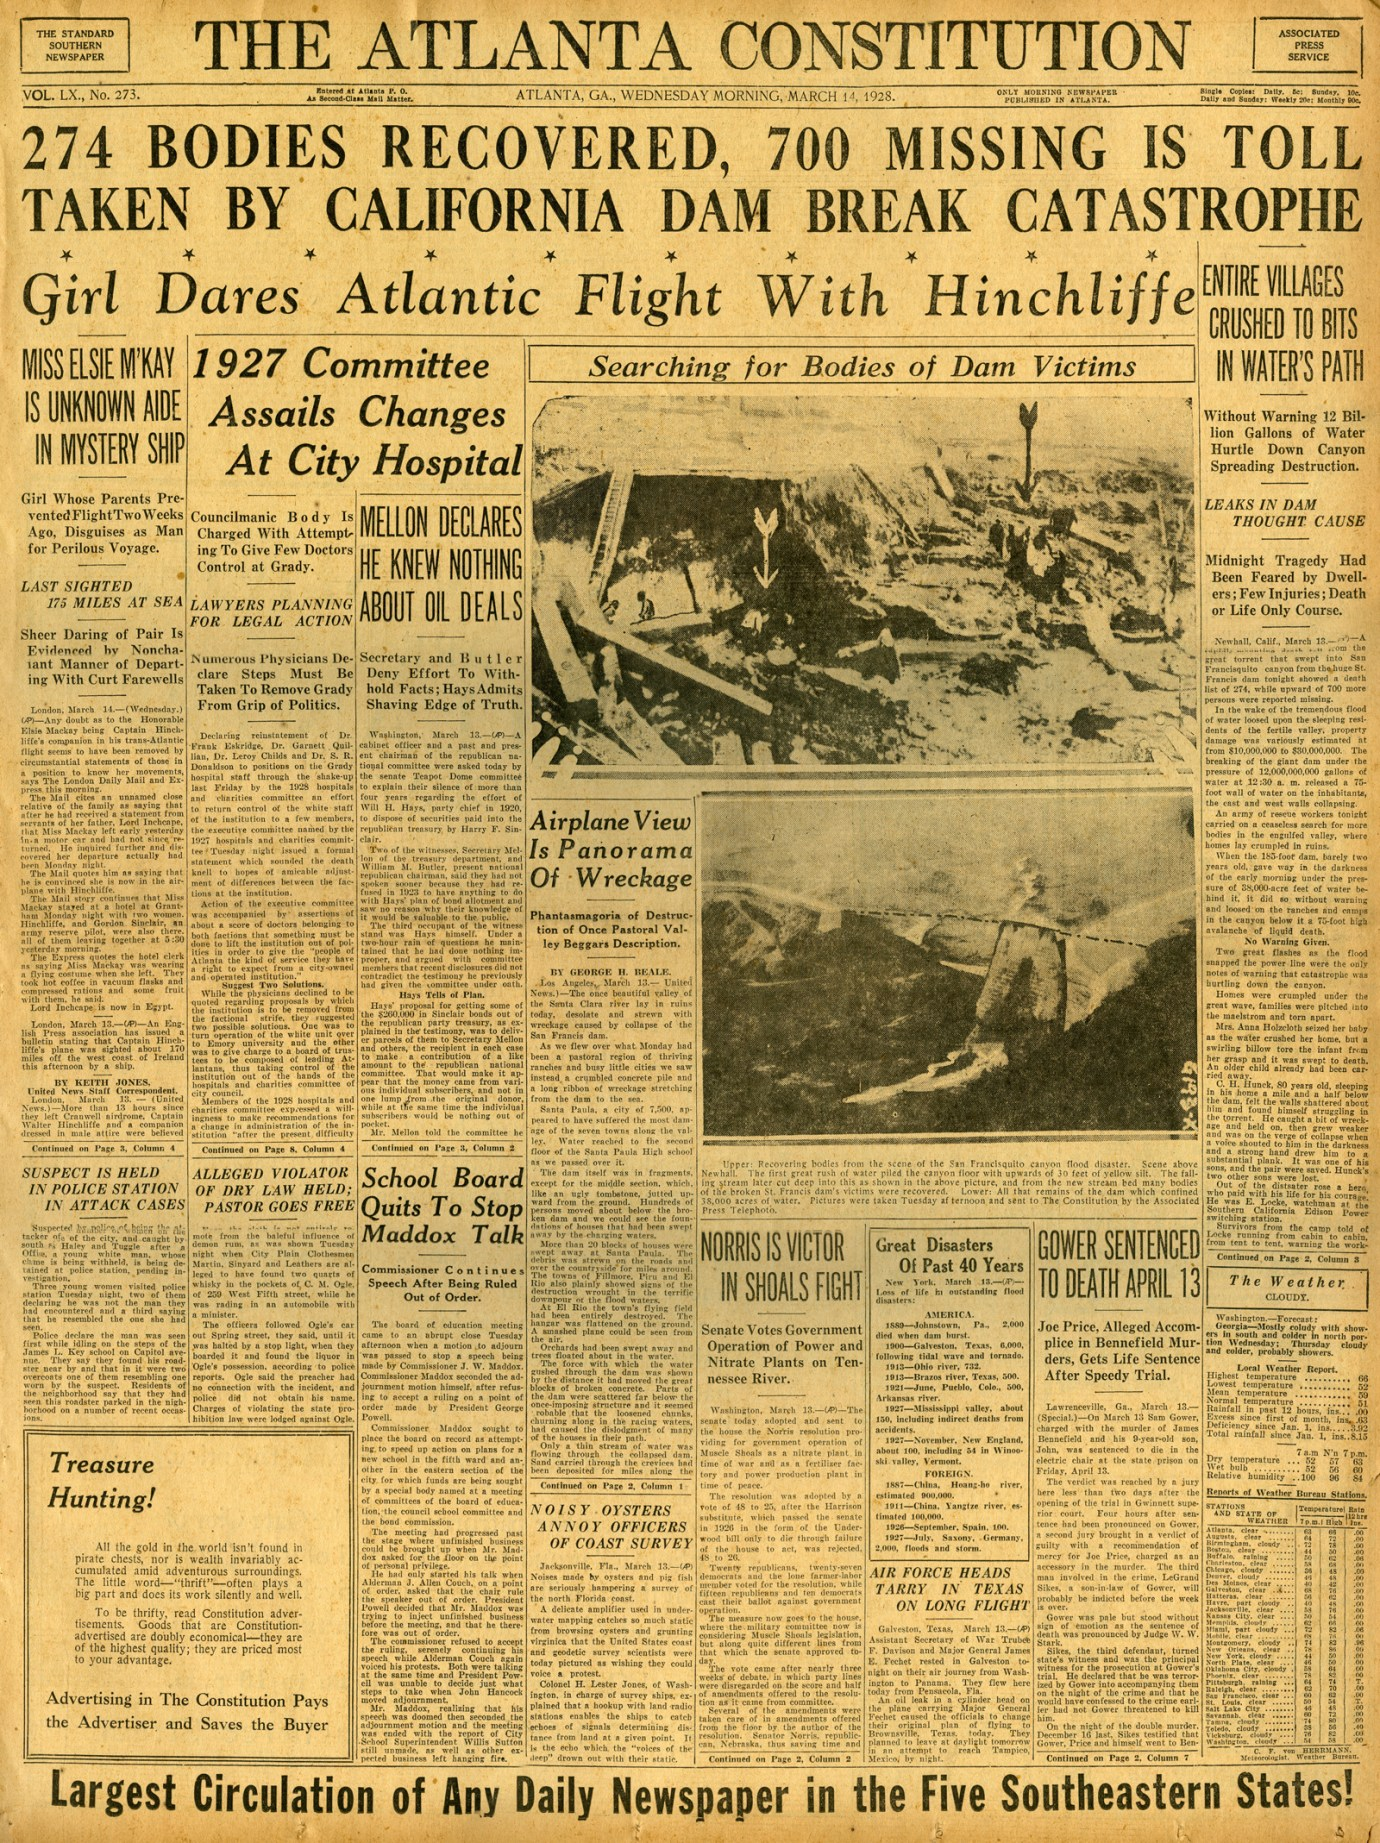 St. Francis Dam Disaster.  THE ATLANTA CONSTITUTION(NEWSPAPER),  WEDNESDAY, MARCH 14, 1928